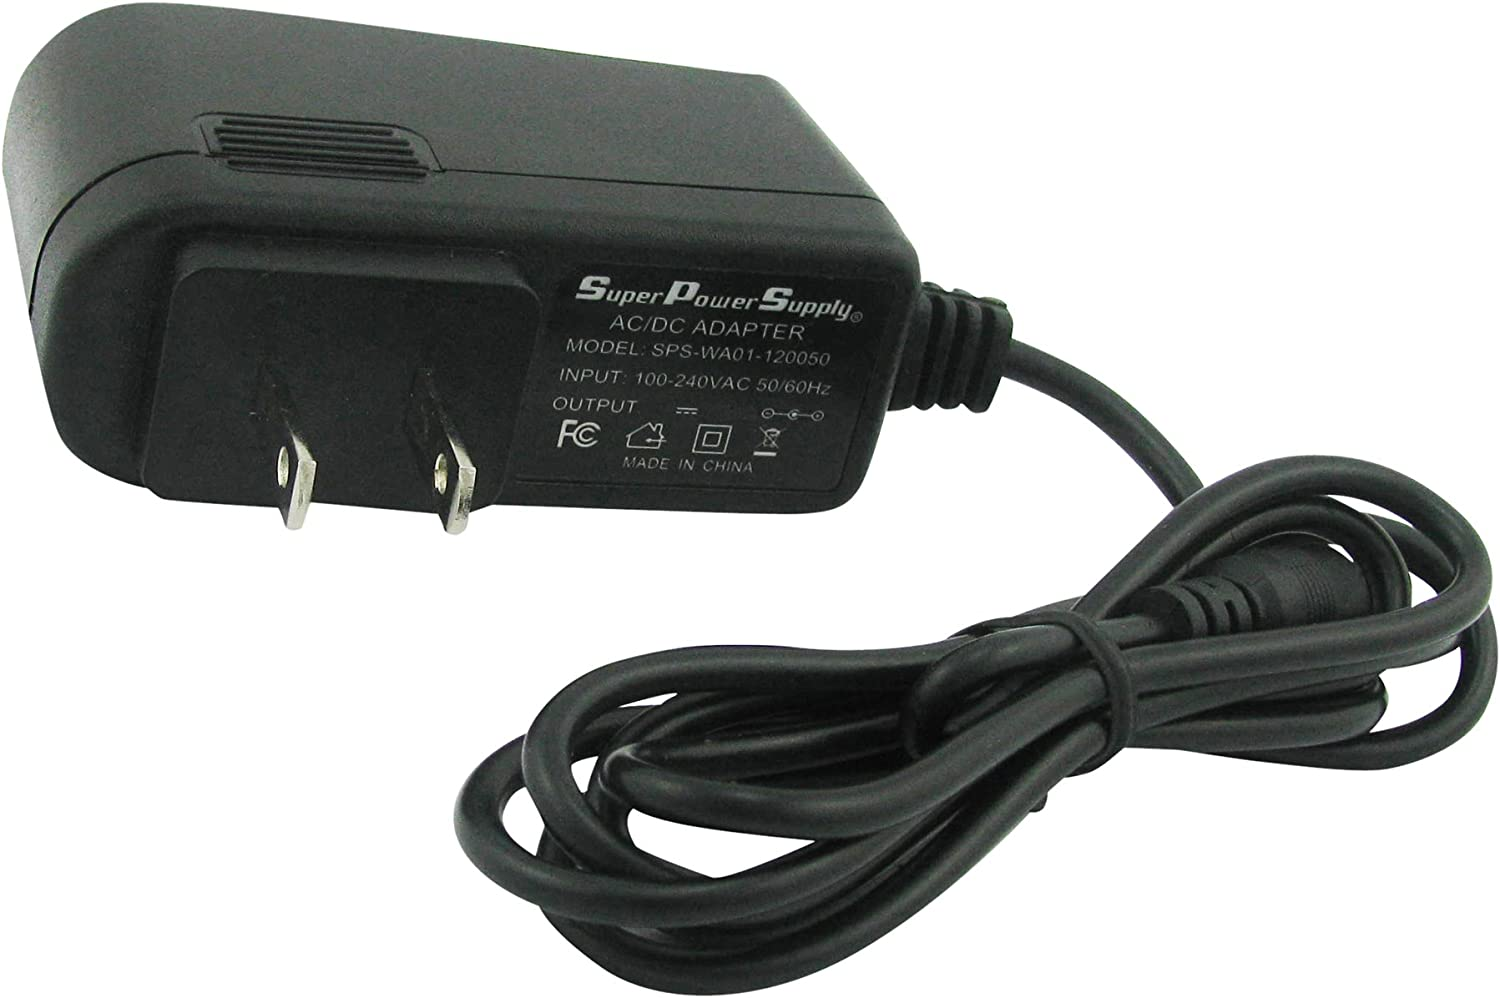 DC Adapter Power Supply Wall Charger US Plug 1500mA 5.5mm x 2.1mm 9V 1.5A AC